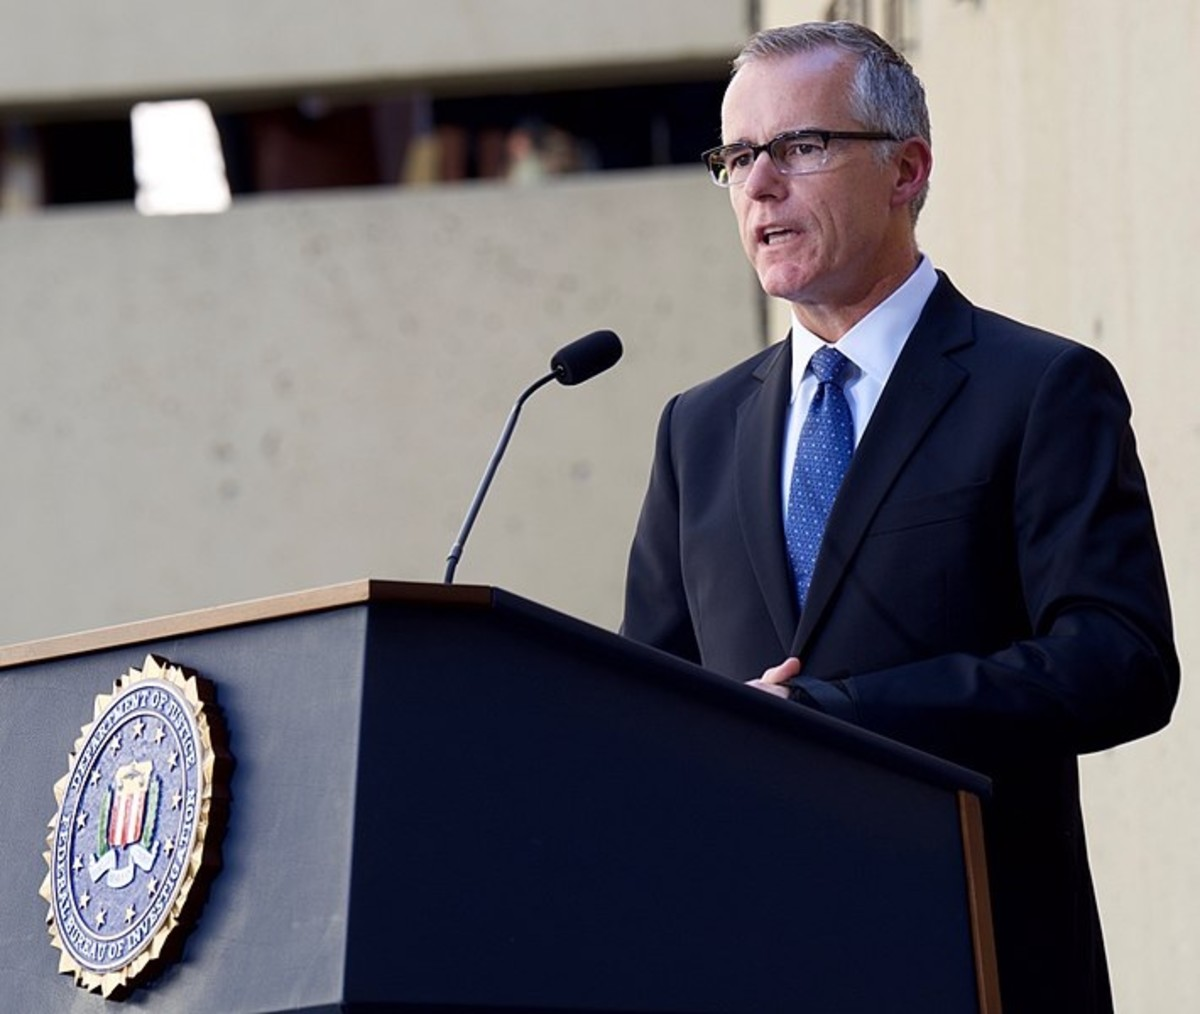 Andrew McCabe at FBI Director Christopher Wray's installation proceedings, on September 28, 2017.